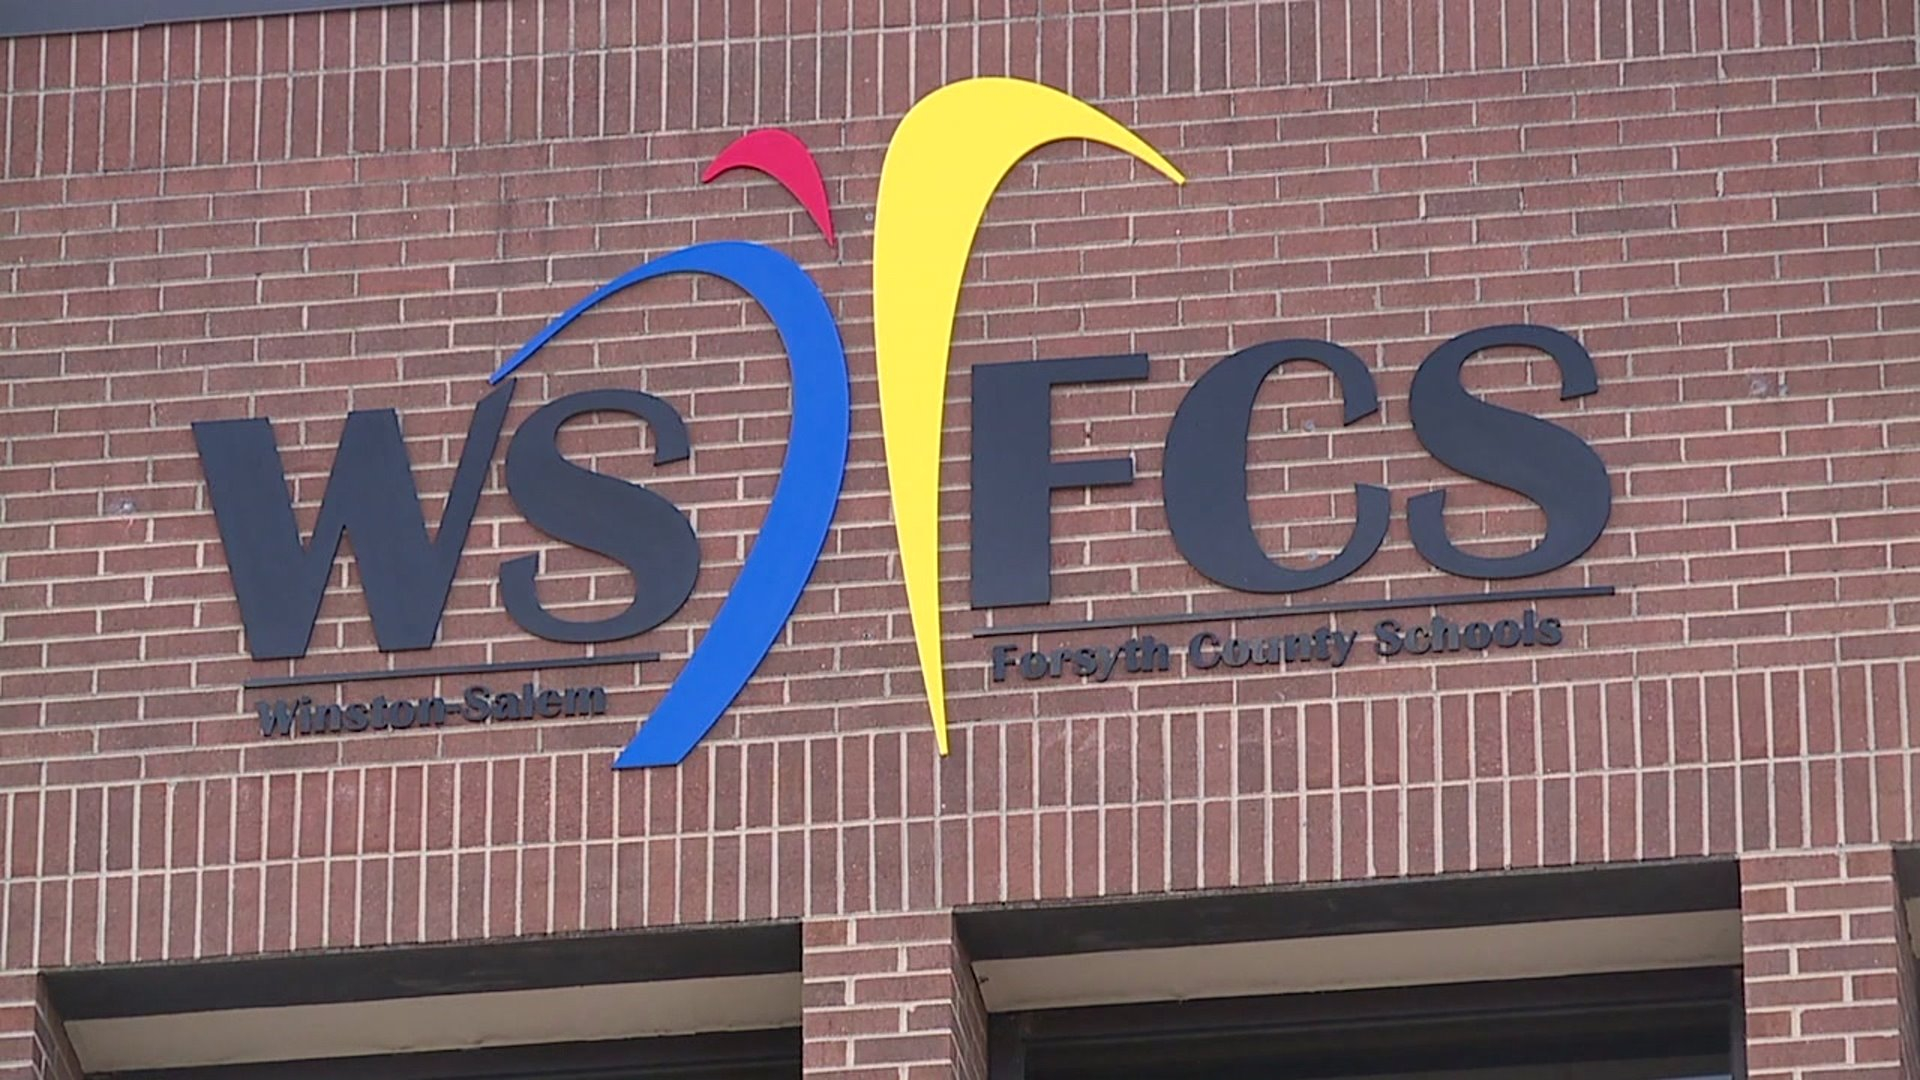 Winston Salem/forsyth County Schools Holds Meeting To Intended For Winston Salem Salem Forsyth County School Calendar